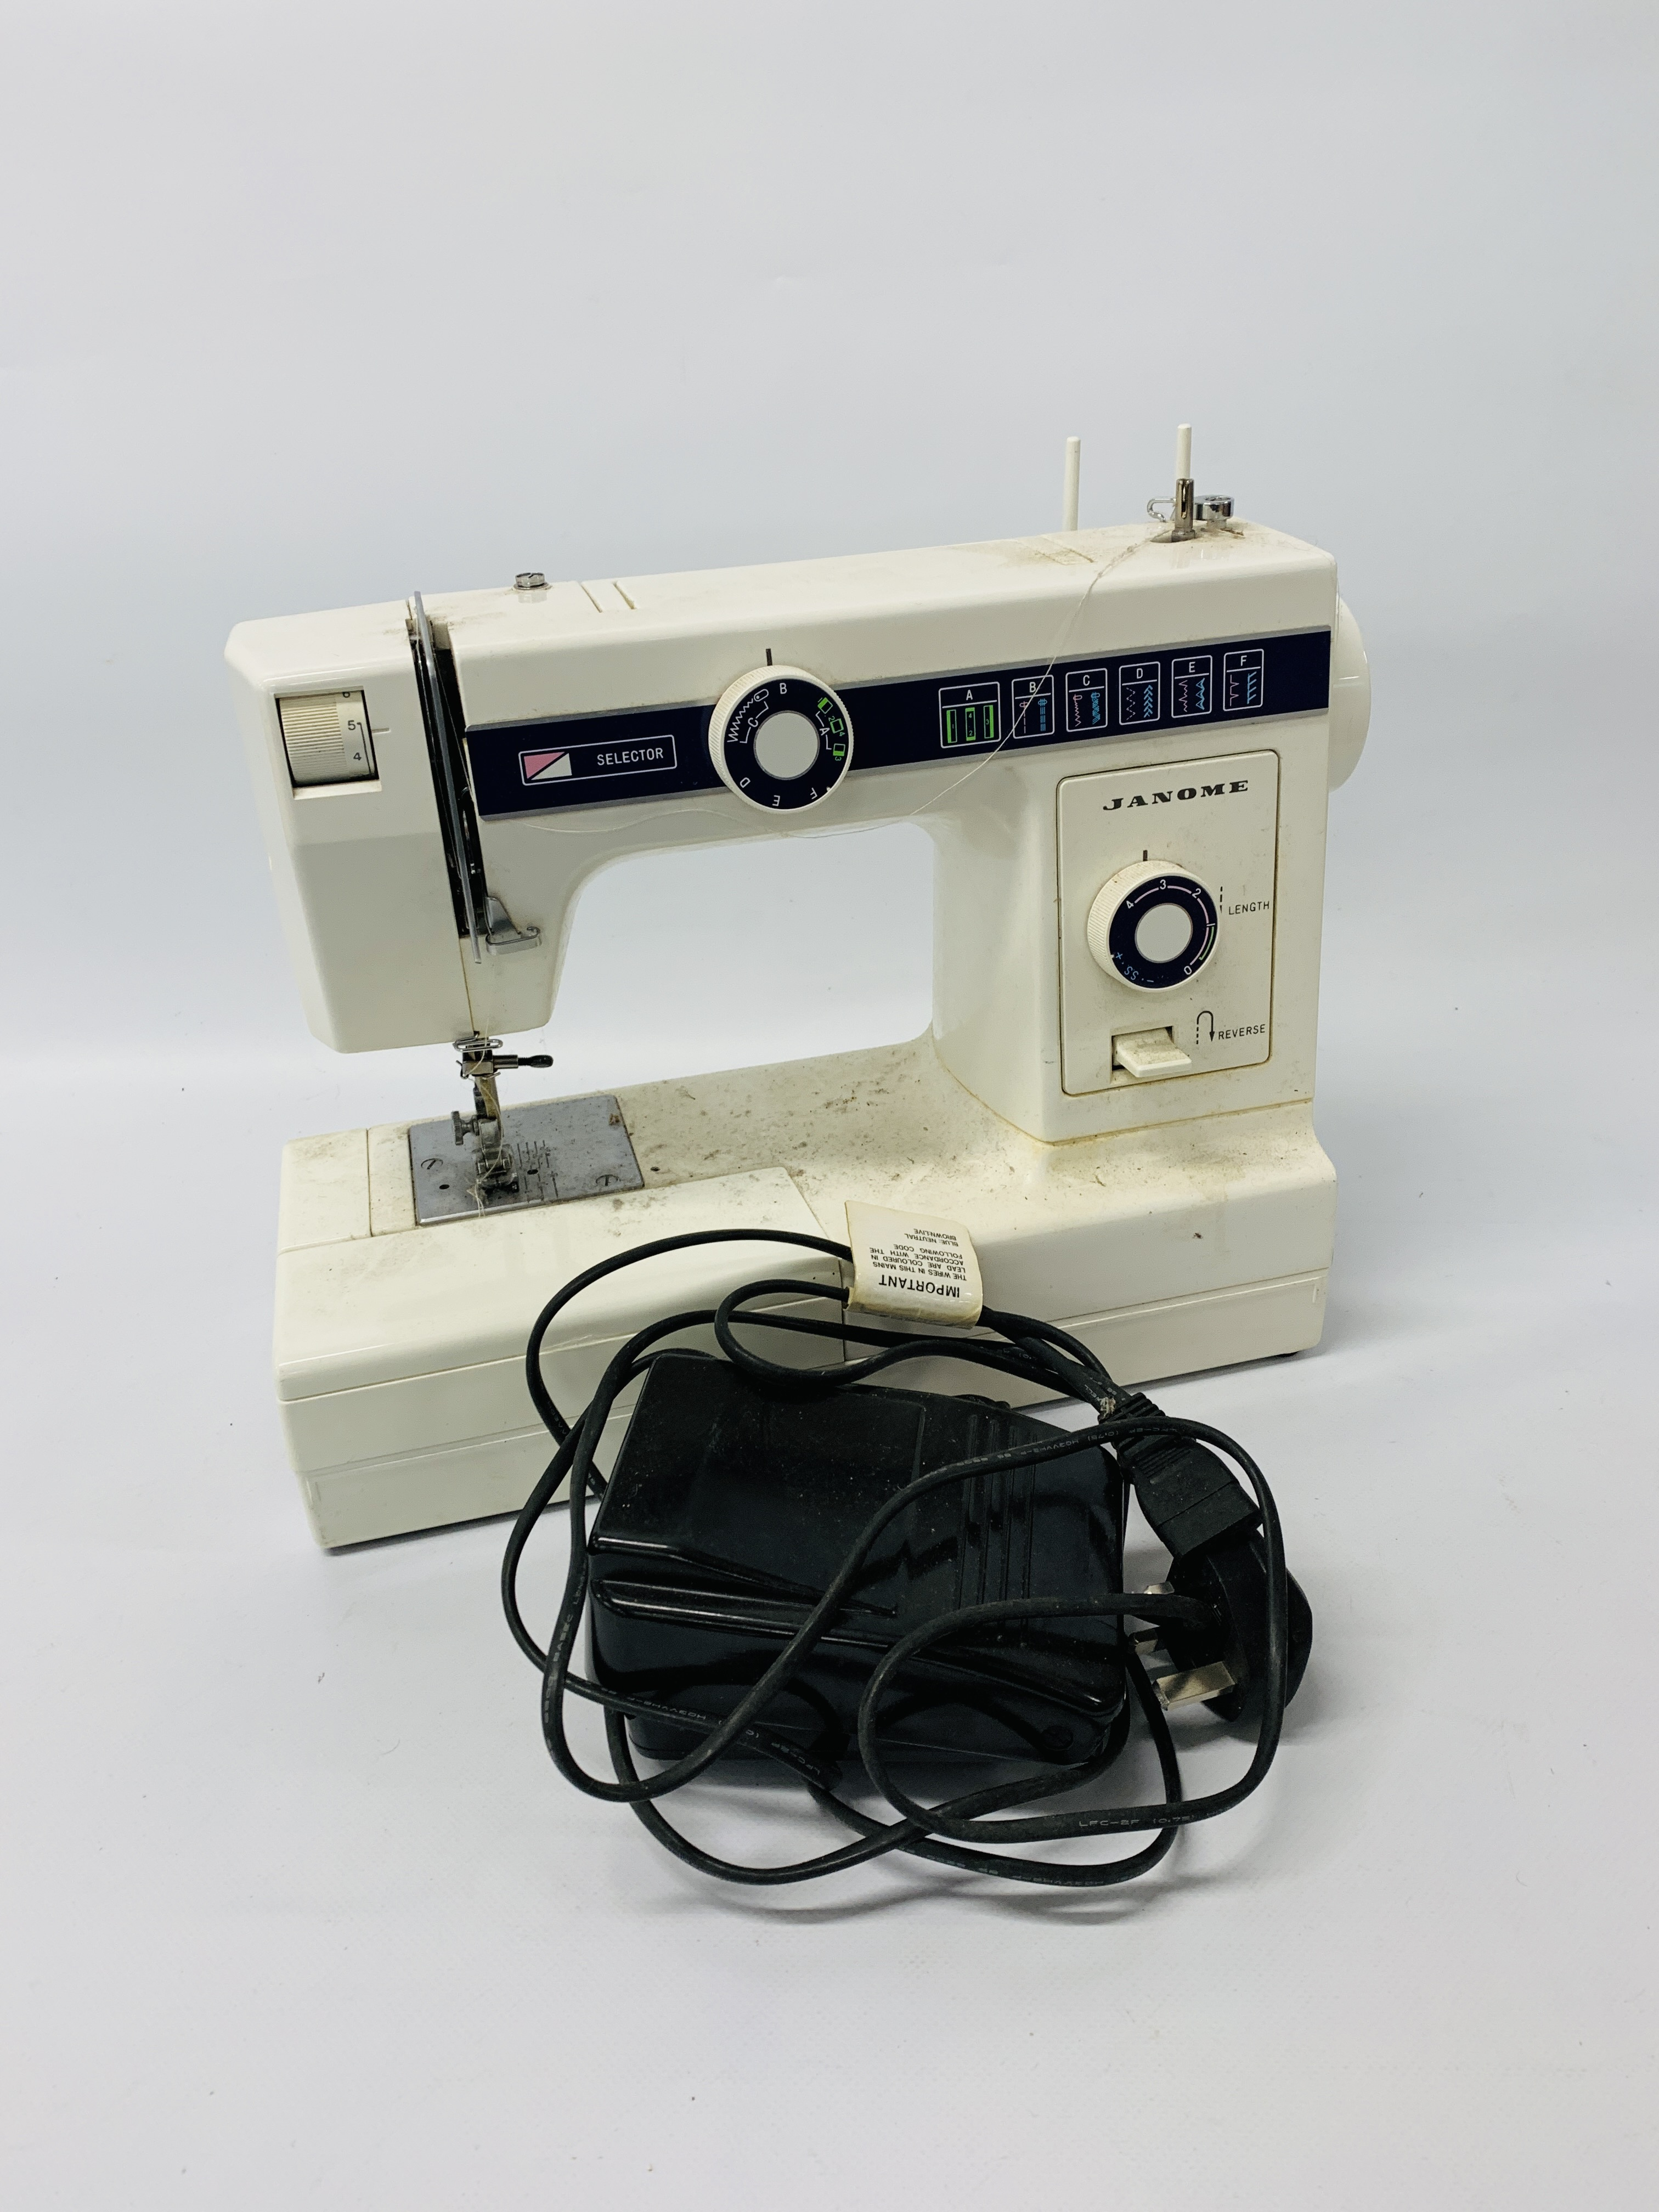 JANOME 110 SEWING MACHINE + VARIOUS KNITTING AND SEWING ACCESSORIES - SOLD AS SEEN